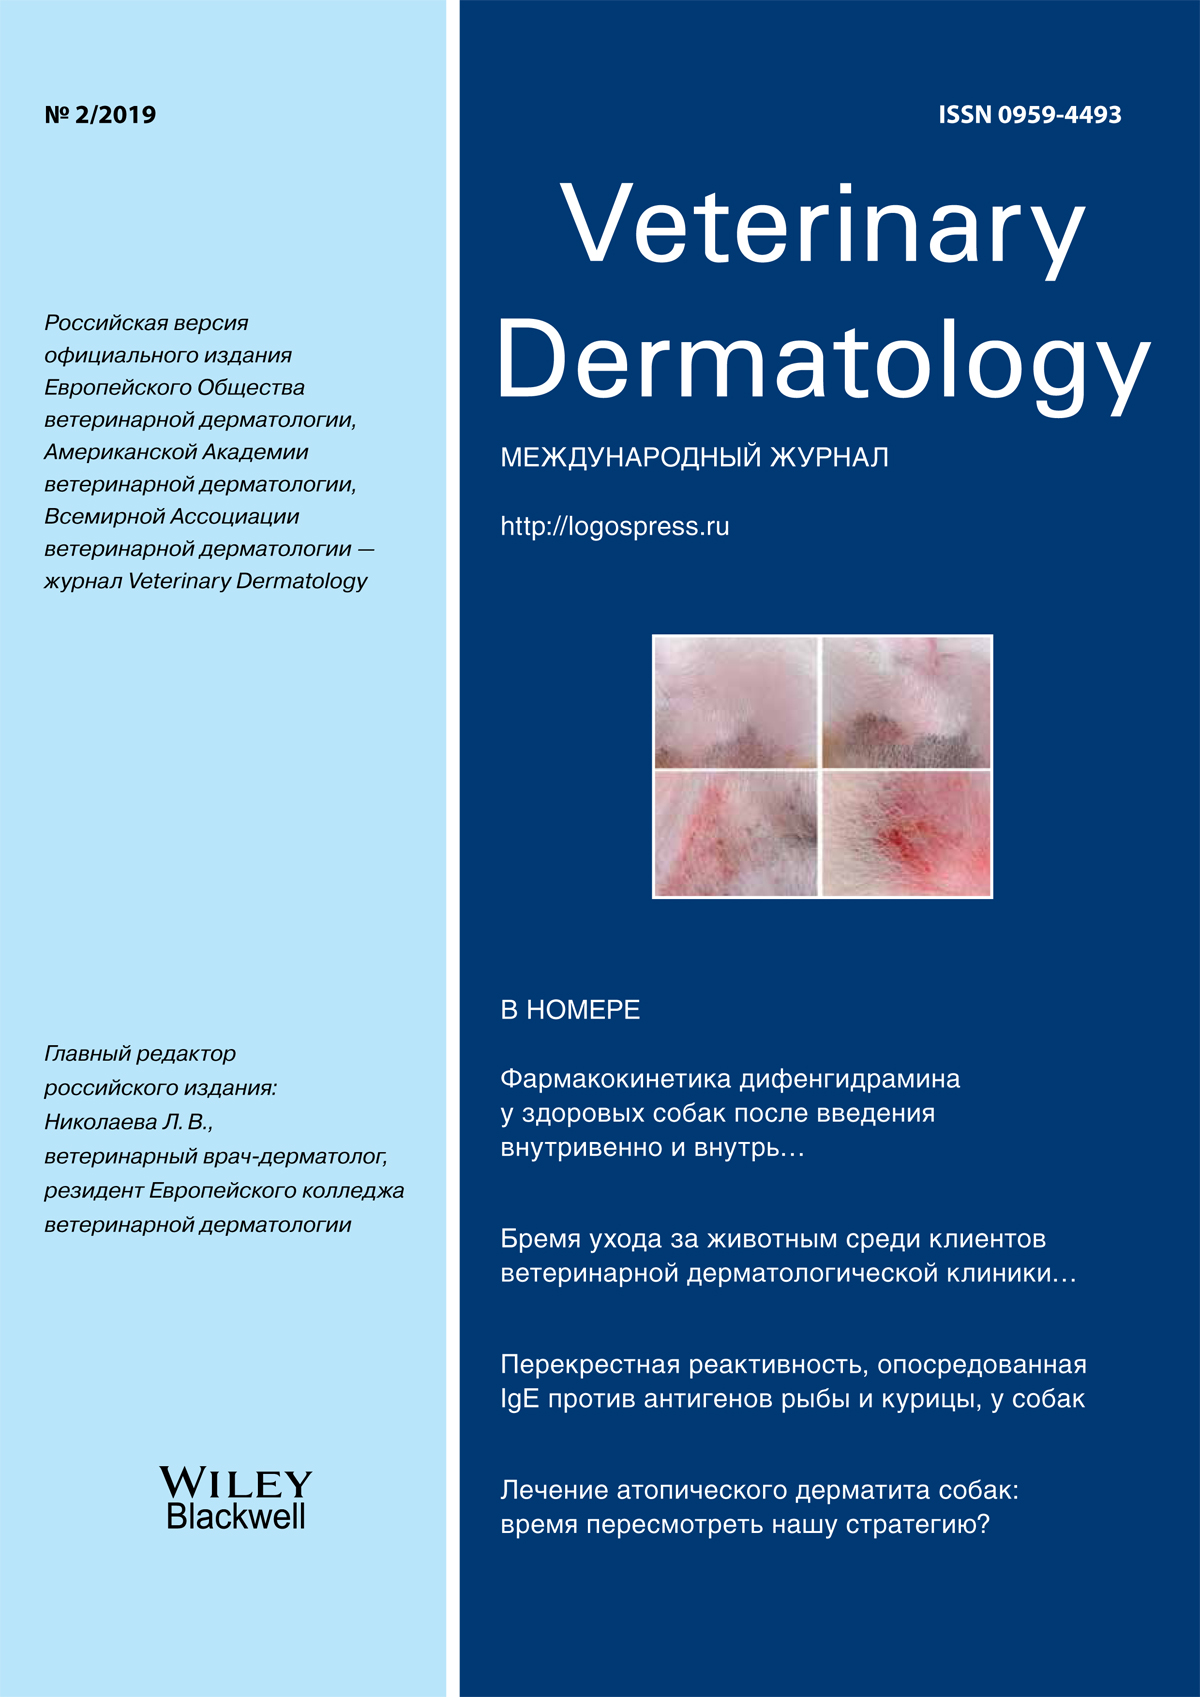 Veterinary Dermatology №2-2019